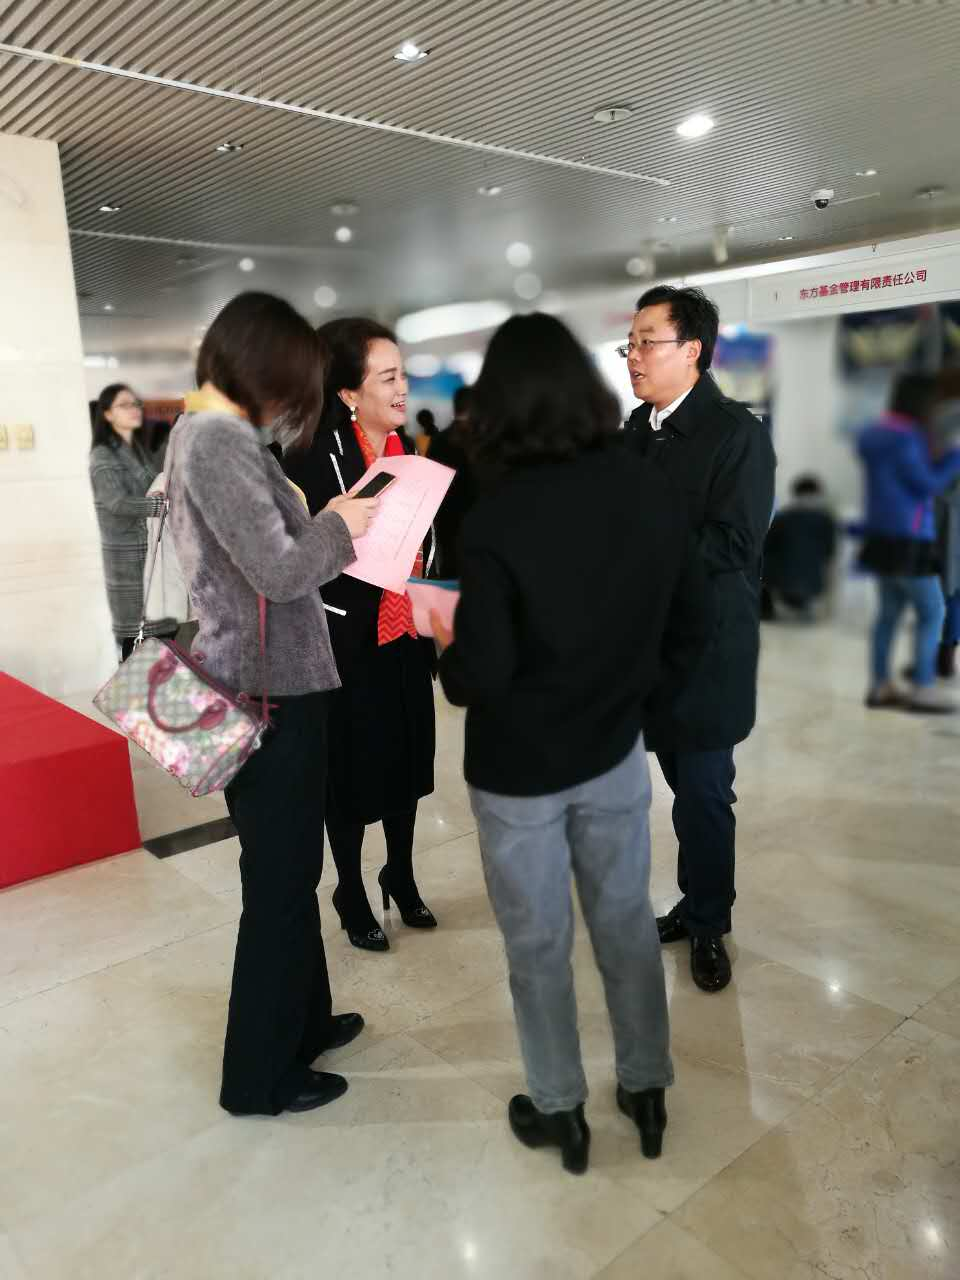 Huijian people walked into their alma mater--Central College of Finance and Economics for on-site recruitment